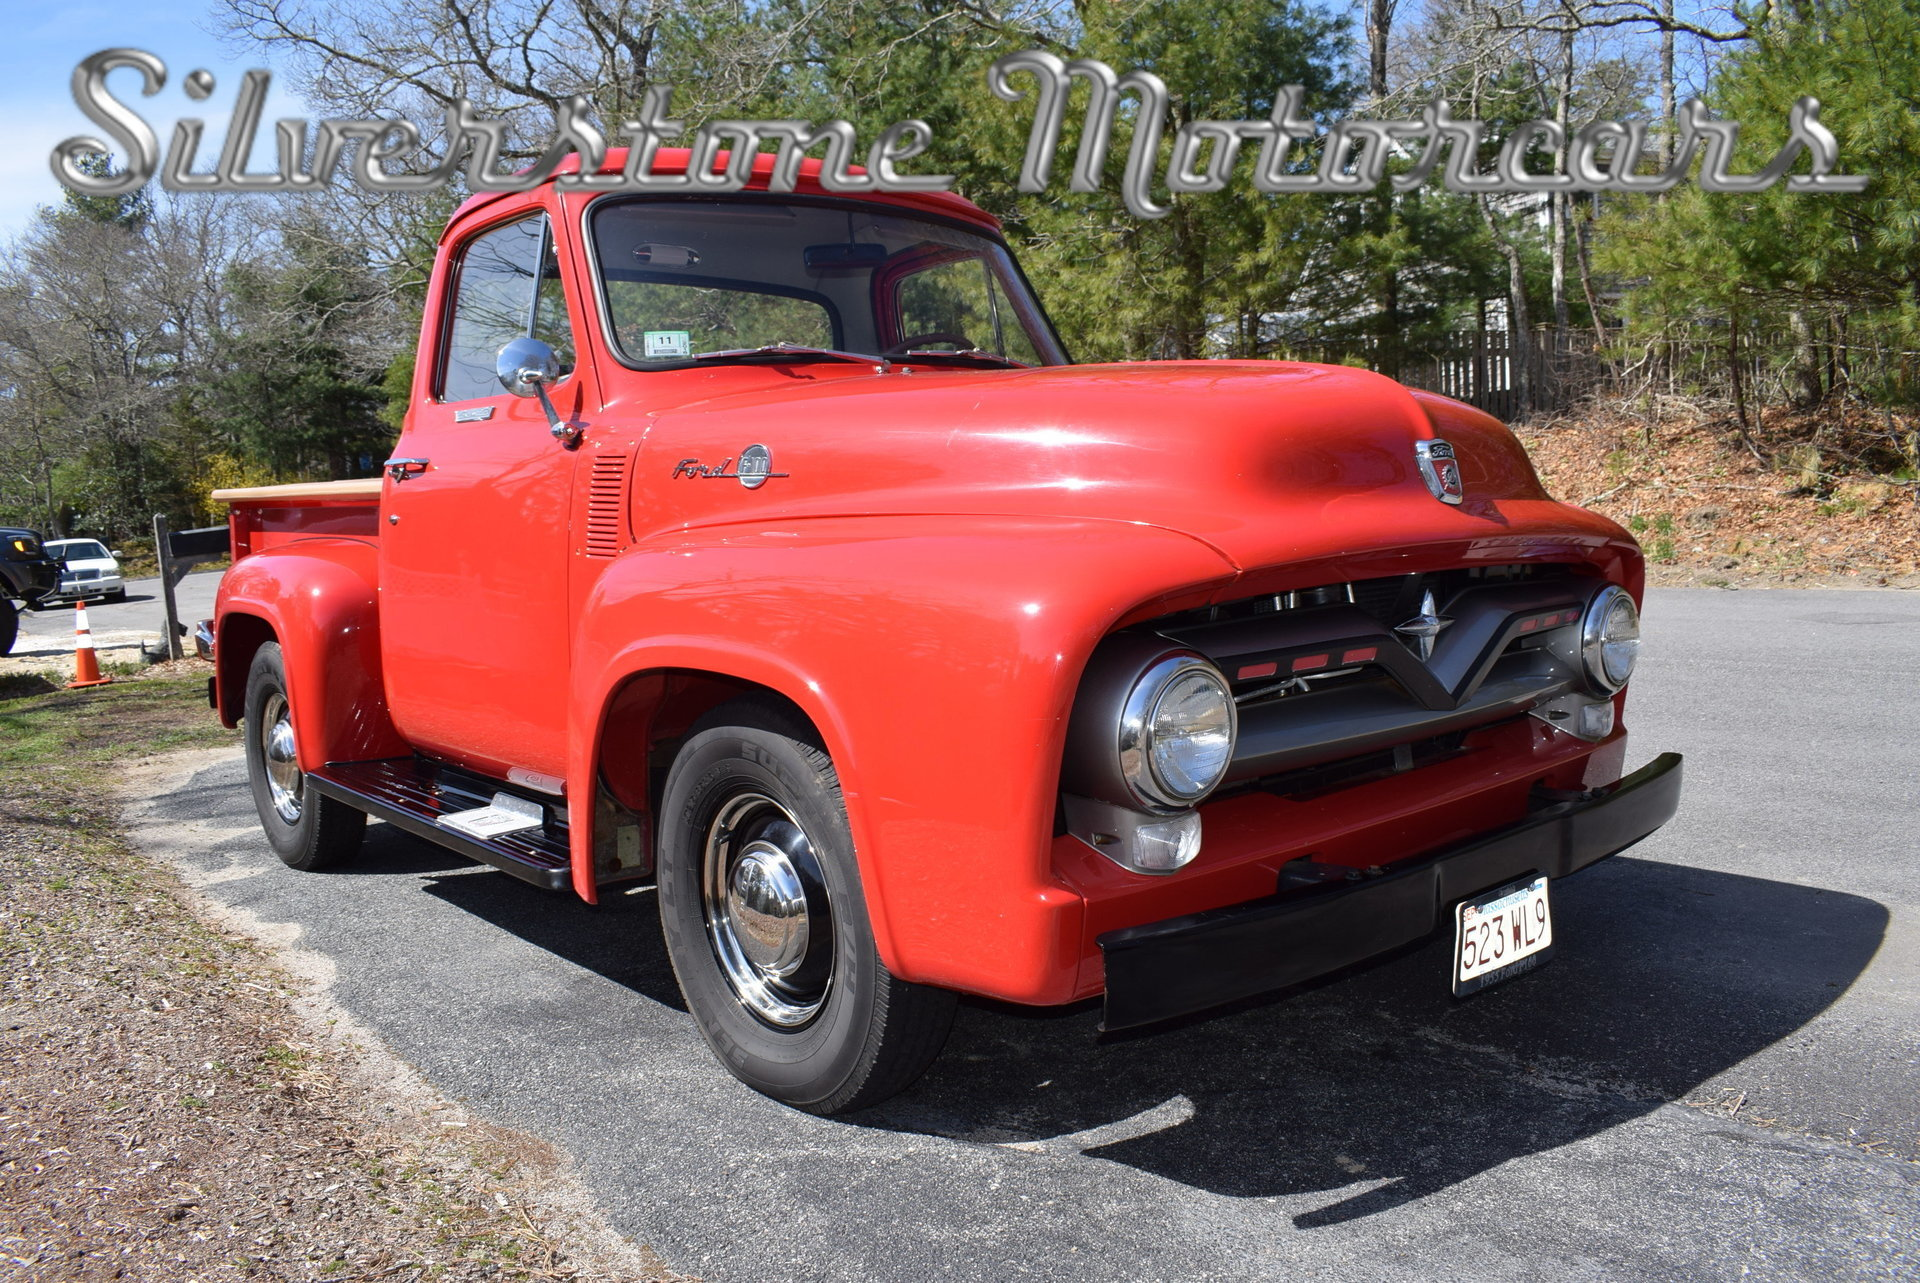 1955 Ford F100 Silverstone Motorcars Pick Up For Sale